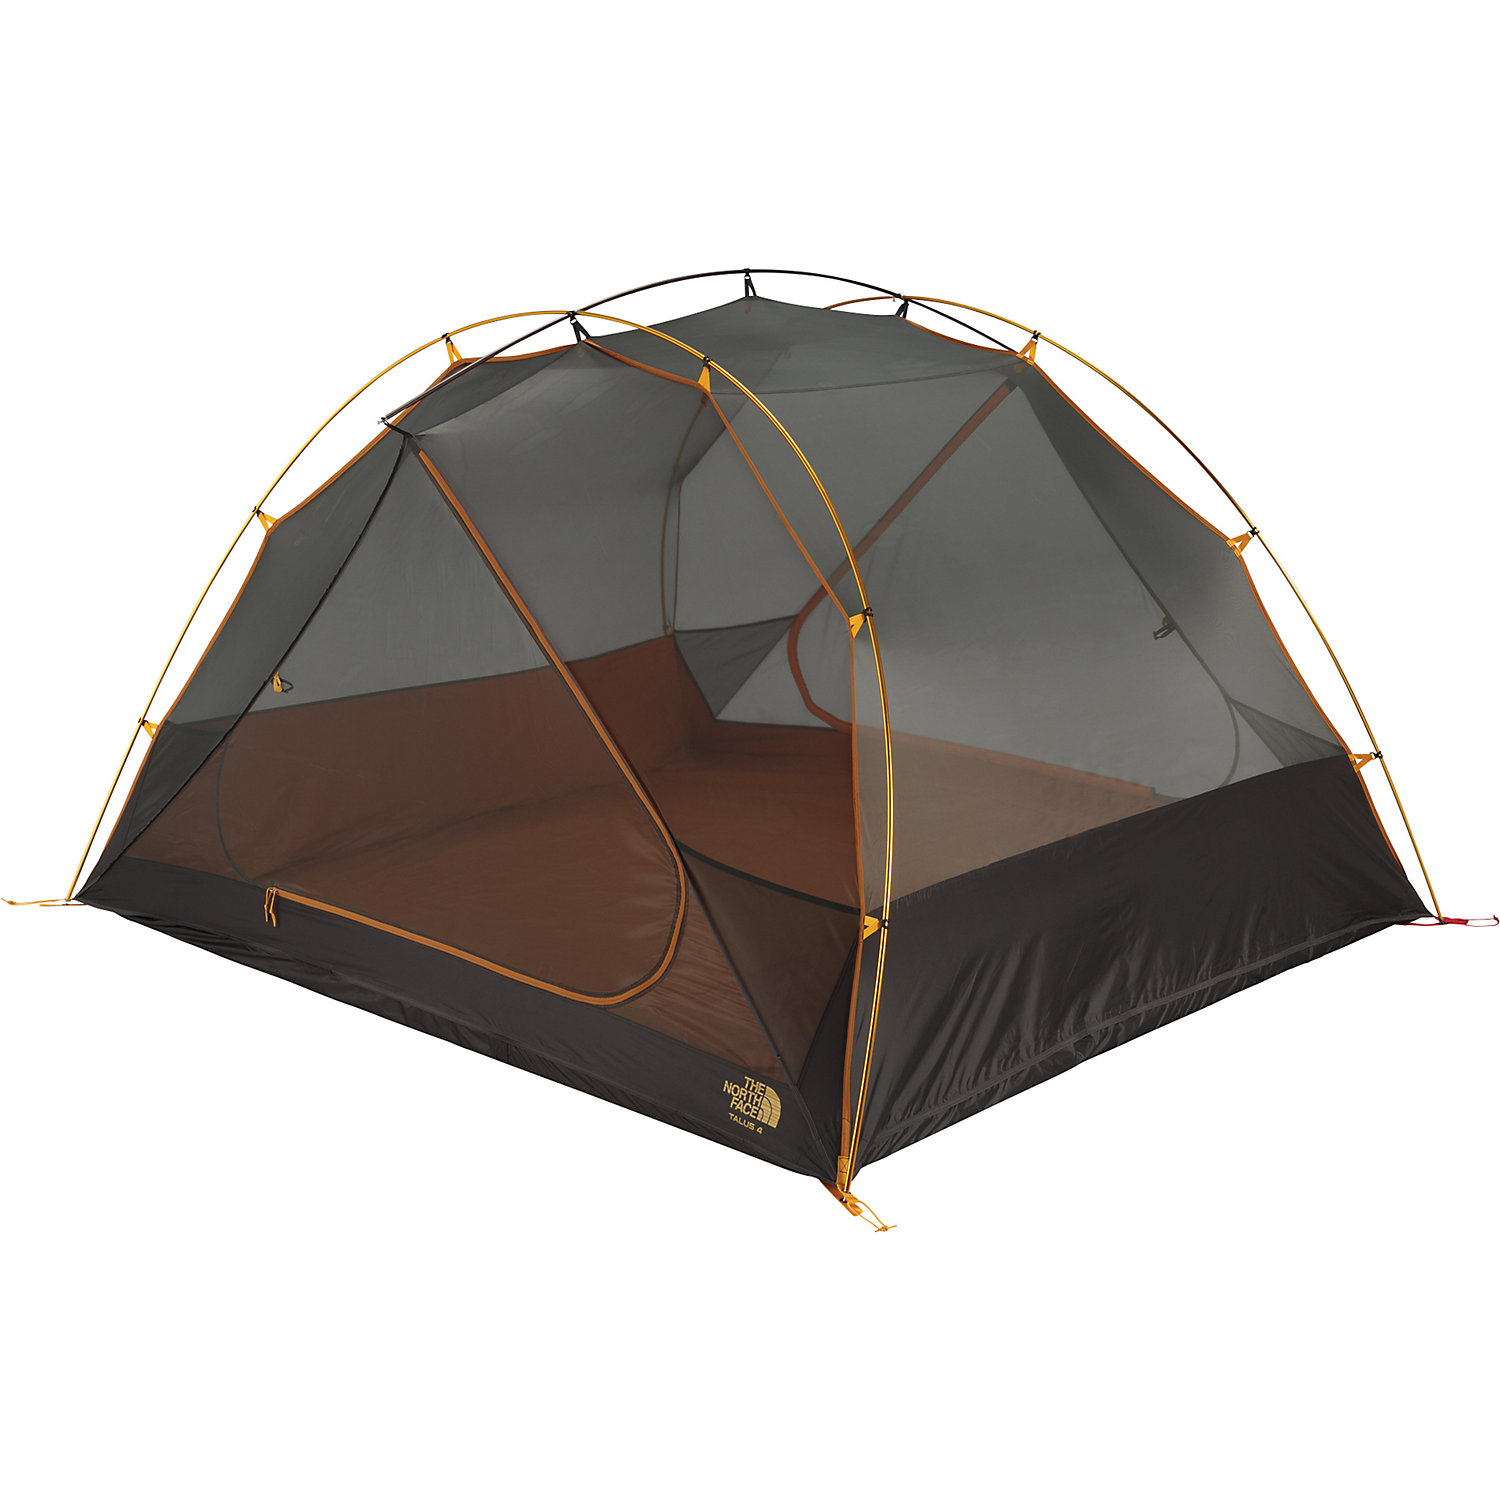 aea439875 The North Face Talus 4 Tent